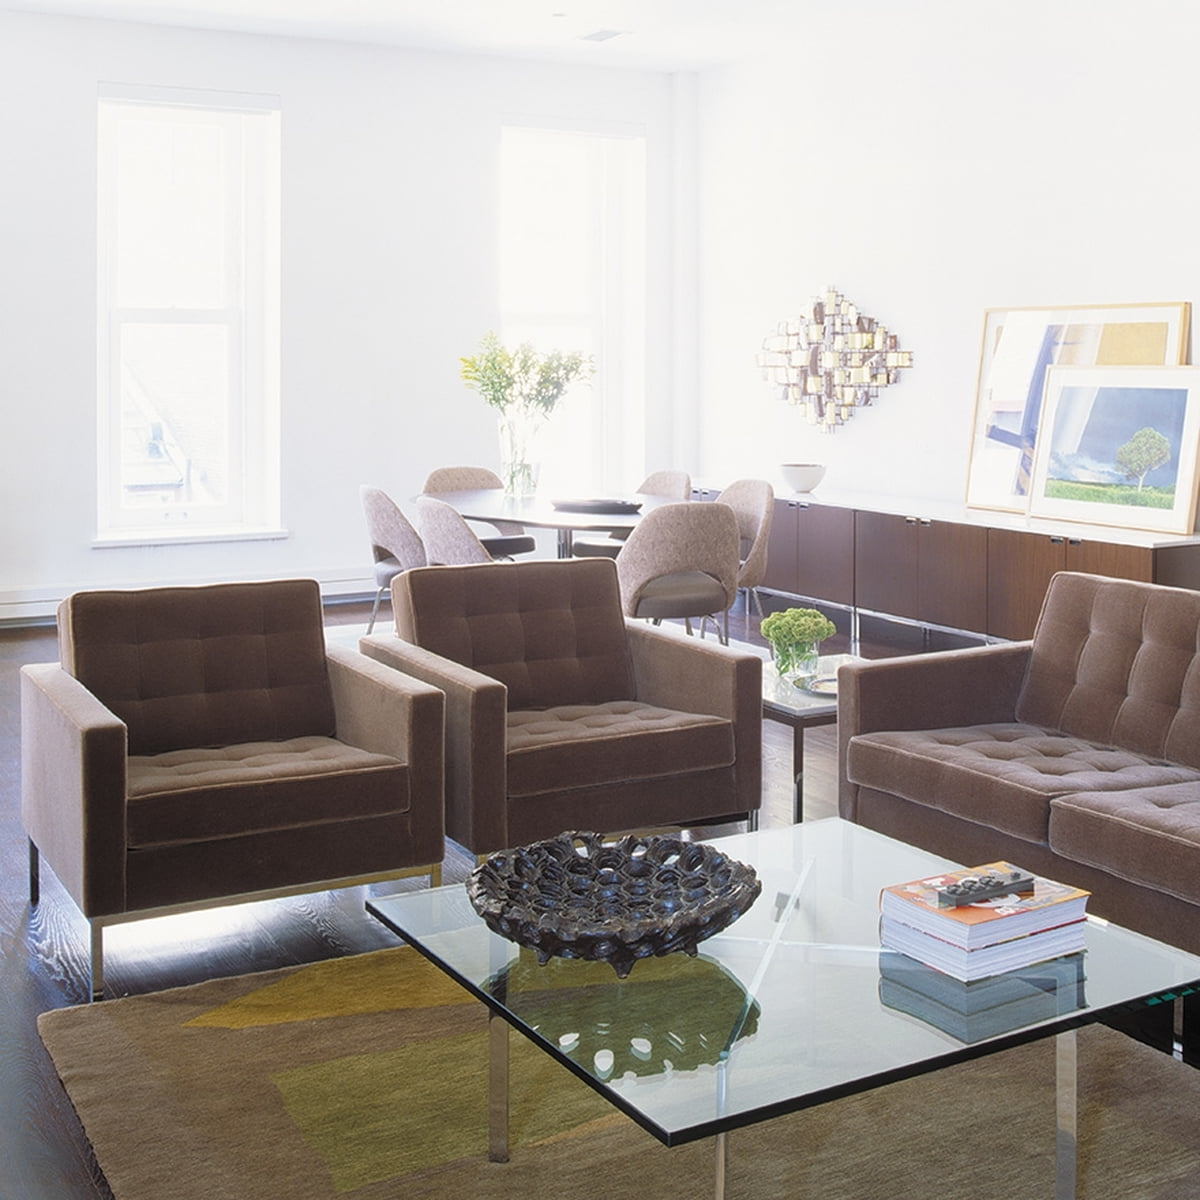 Most Popular Florence Knoll Wood Legs Sofas Throughout Knoll Florence 2 Seats Sofa In The Shop (View 11 of 20)